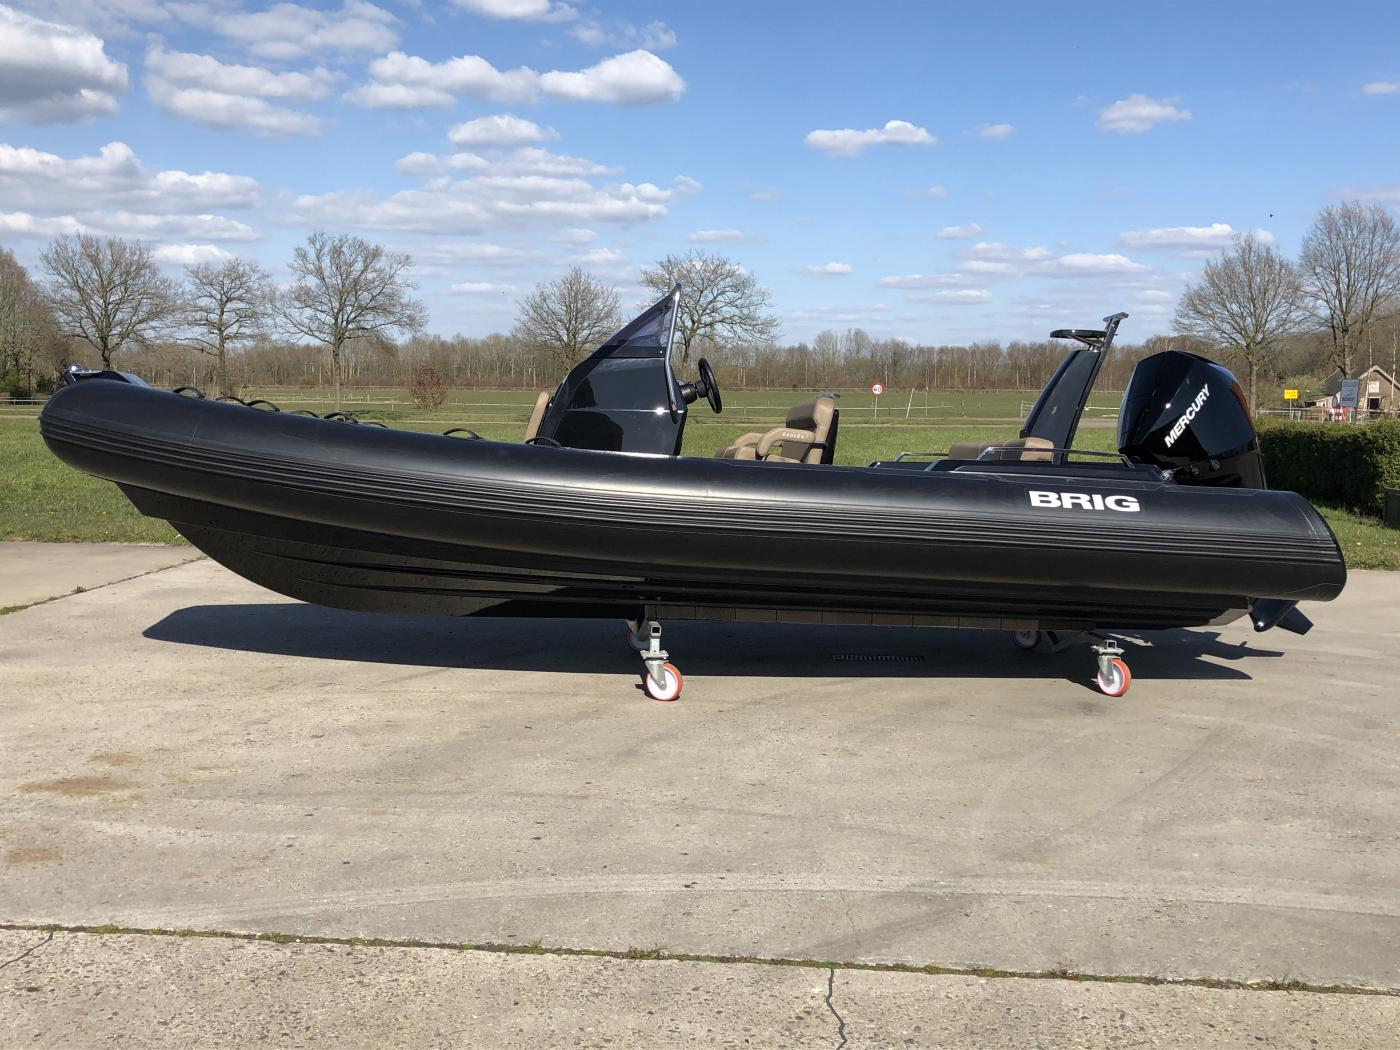 Te koop Brig  Eagle 6.7 Rubberboten | Bomert Watersport